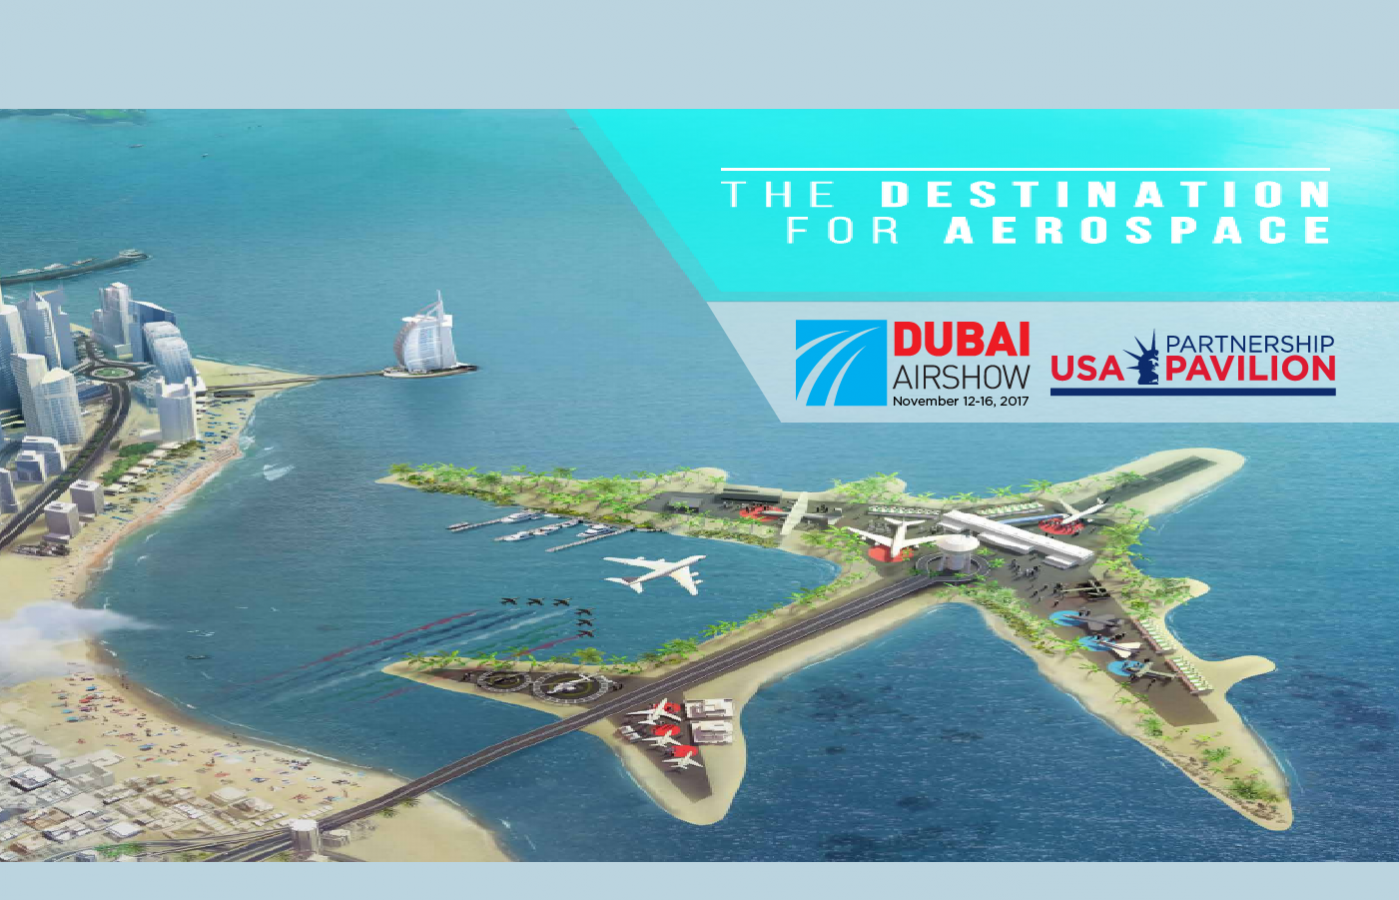 USA Partnership Pavilion at Dubai Airshow